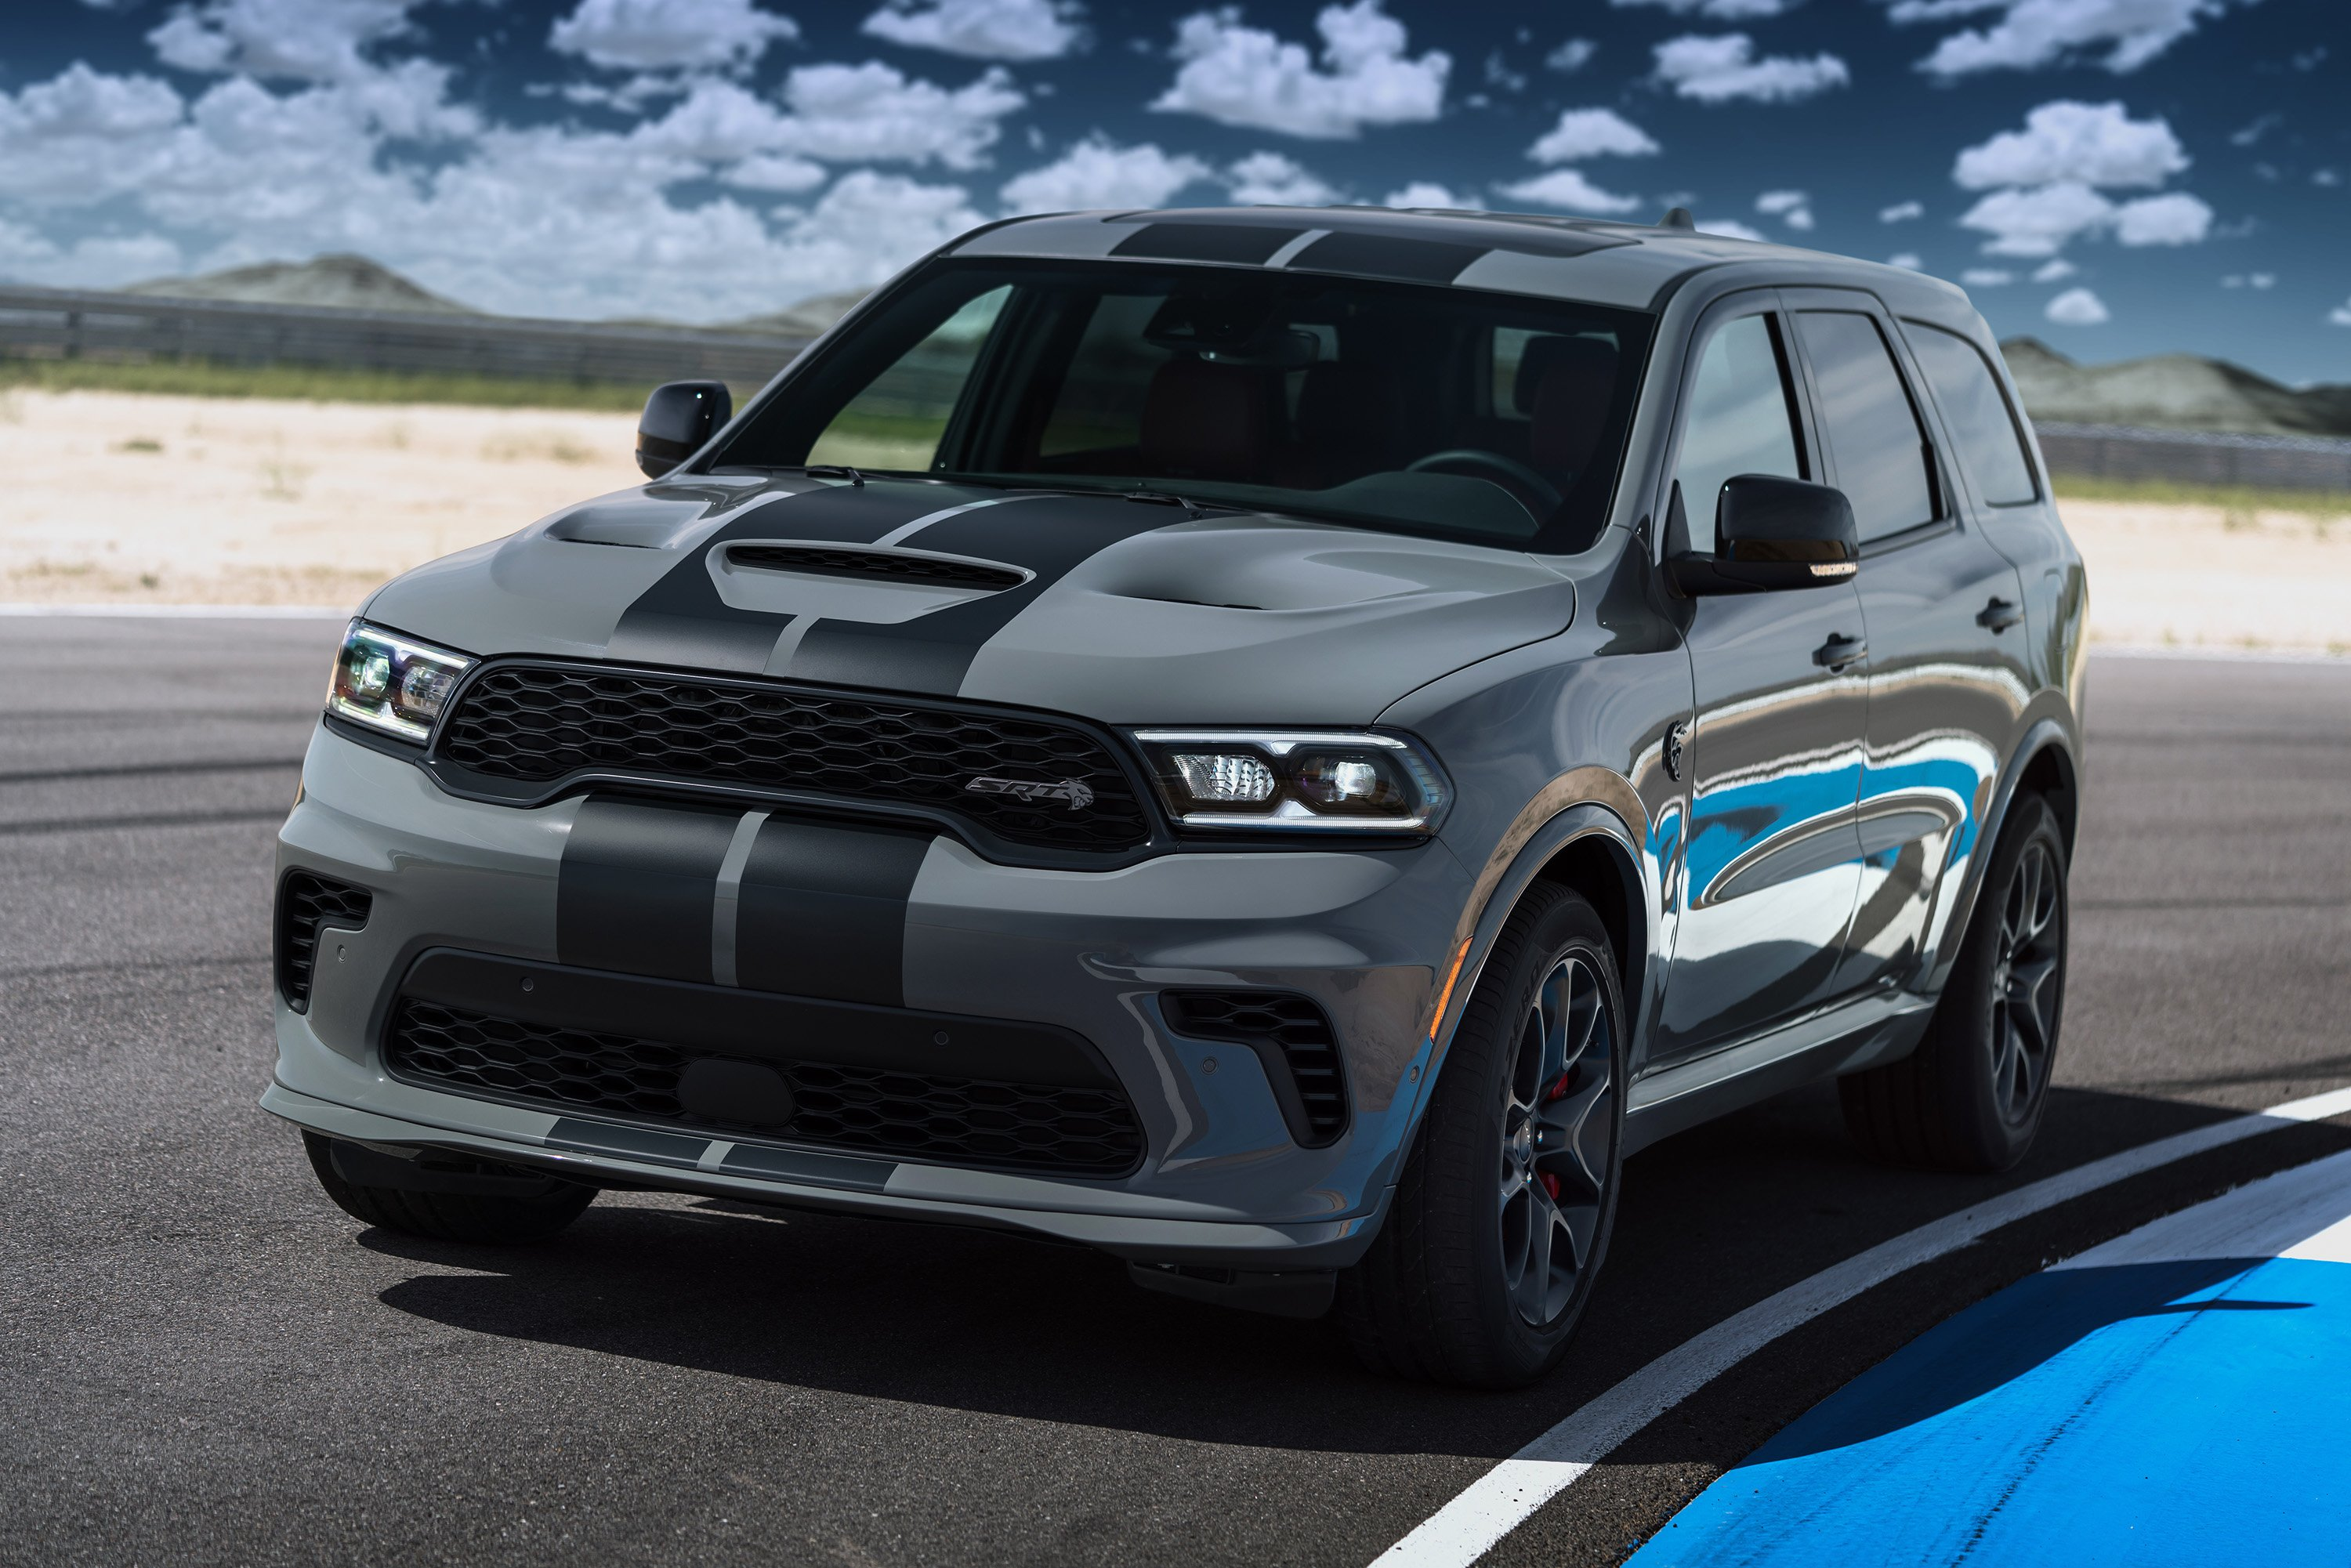 2021 Dodge Journey Srt Engine